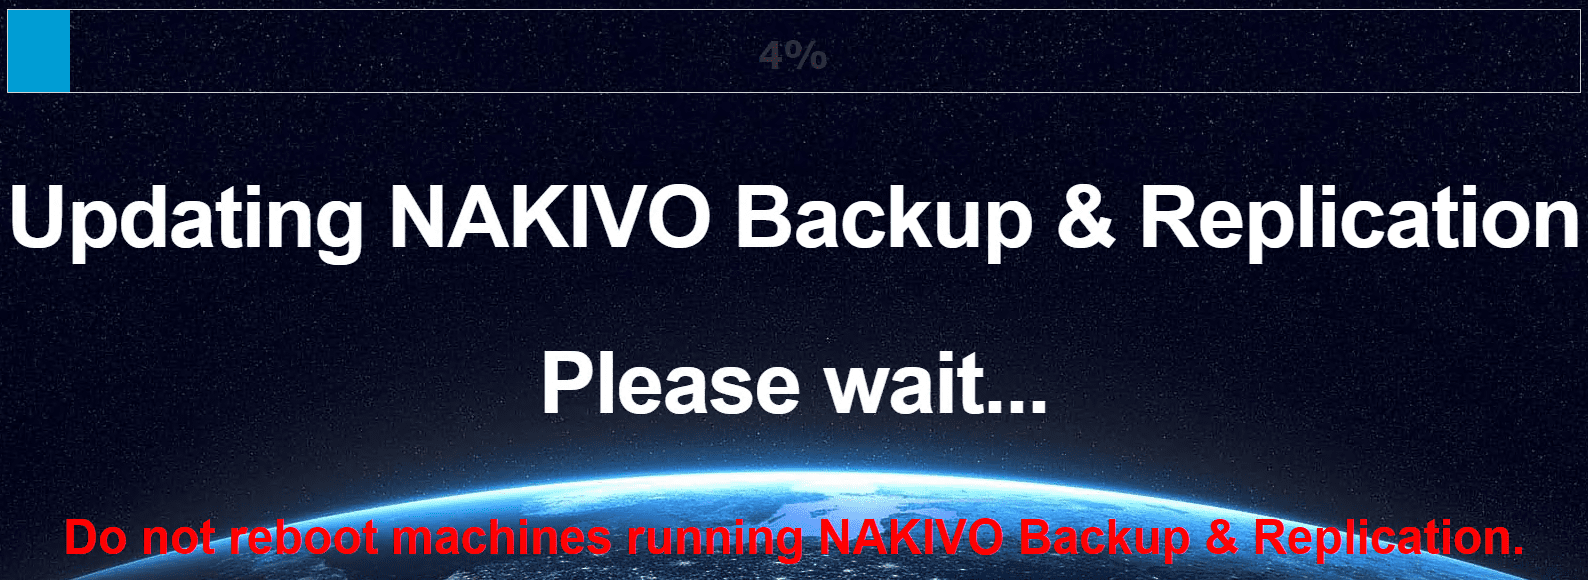 The-NAKIVO-Backup-Replication-v8.5.2-update-begins-applying-to-the-appliance